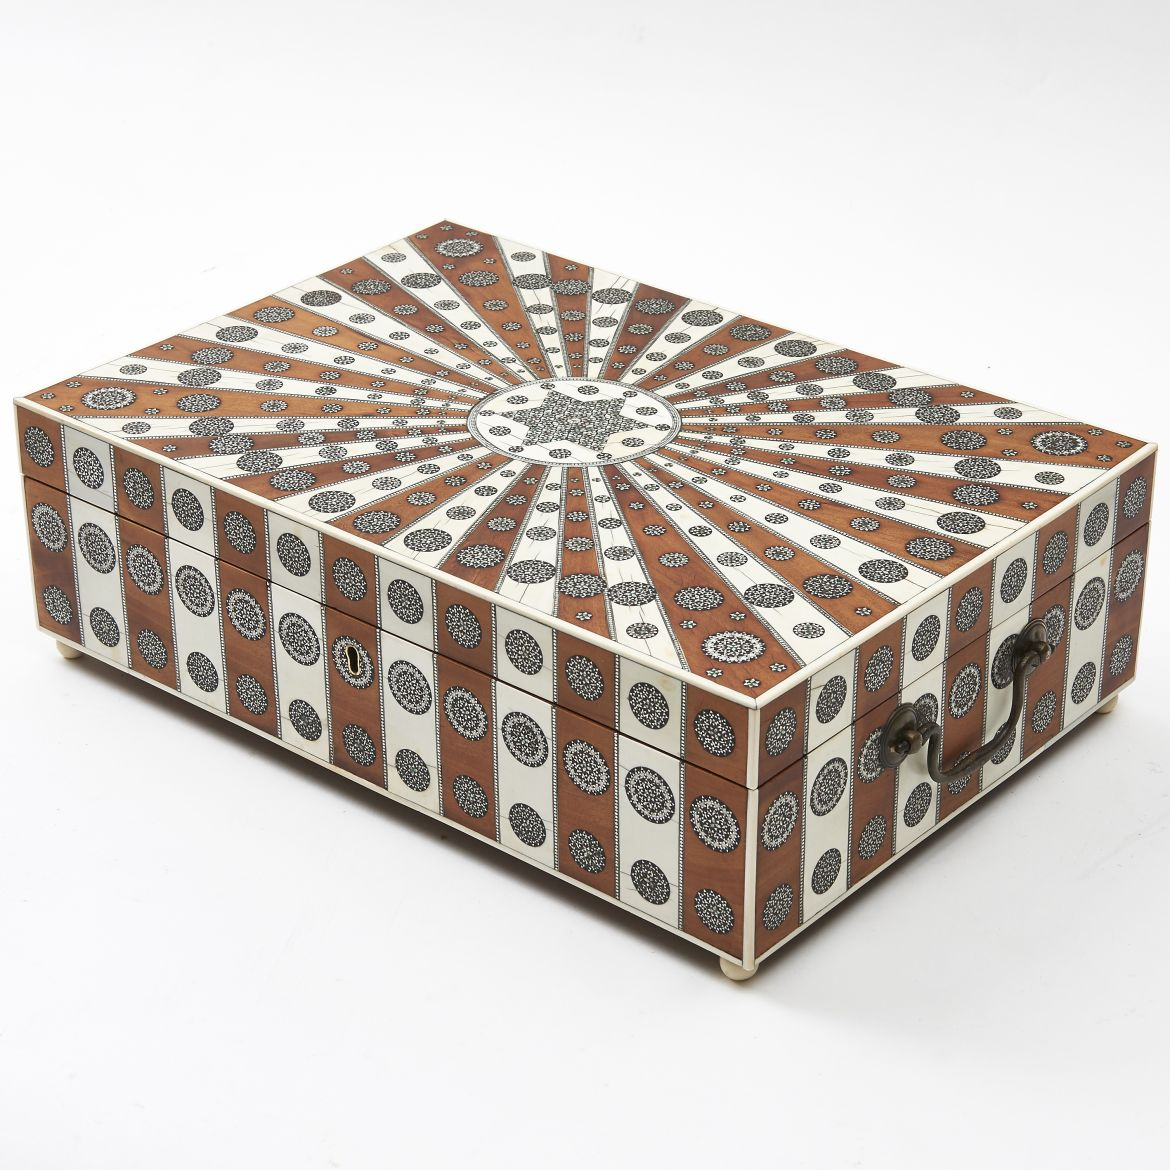 Anglo Indian Sunburst Pattern Box